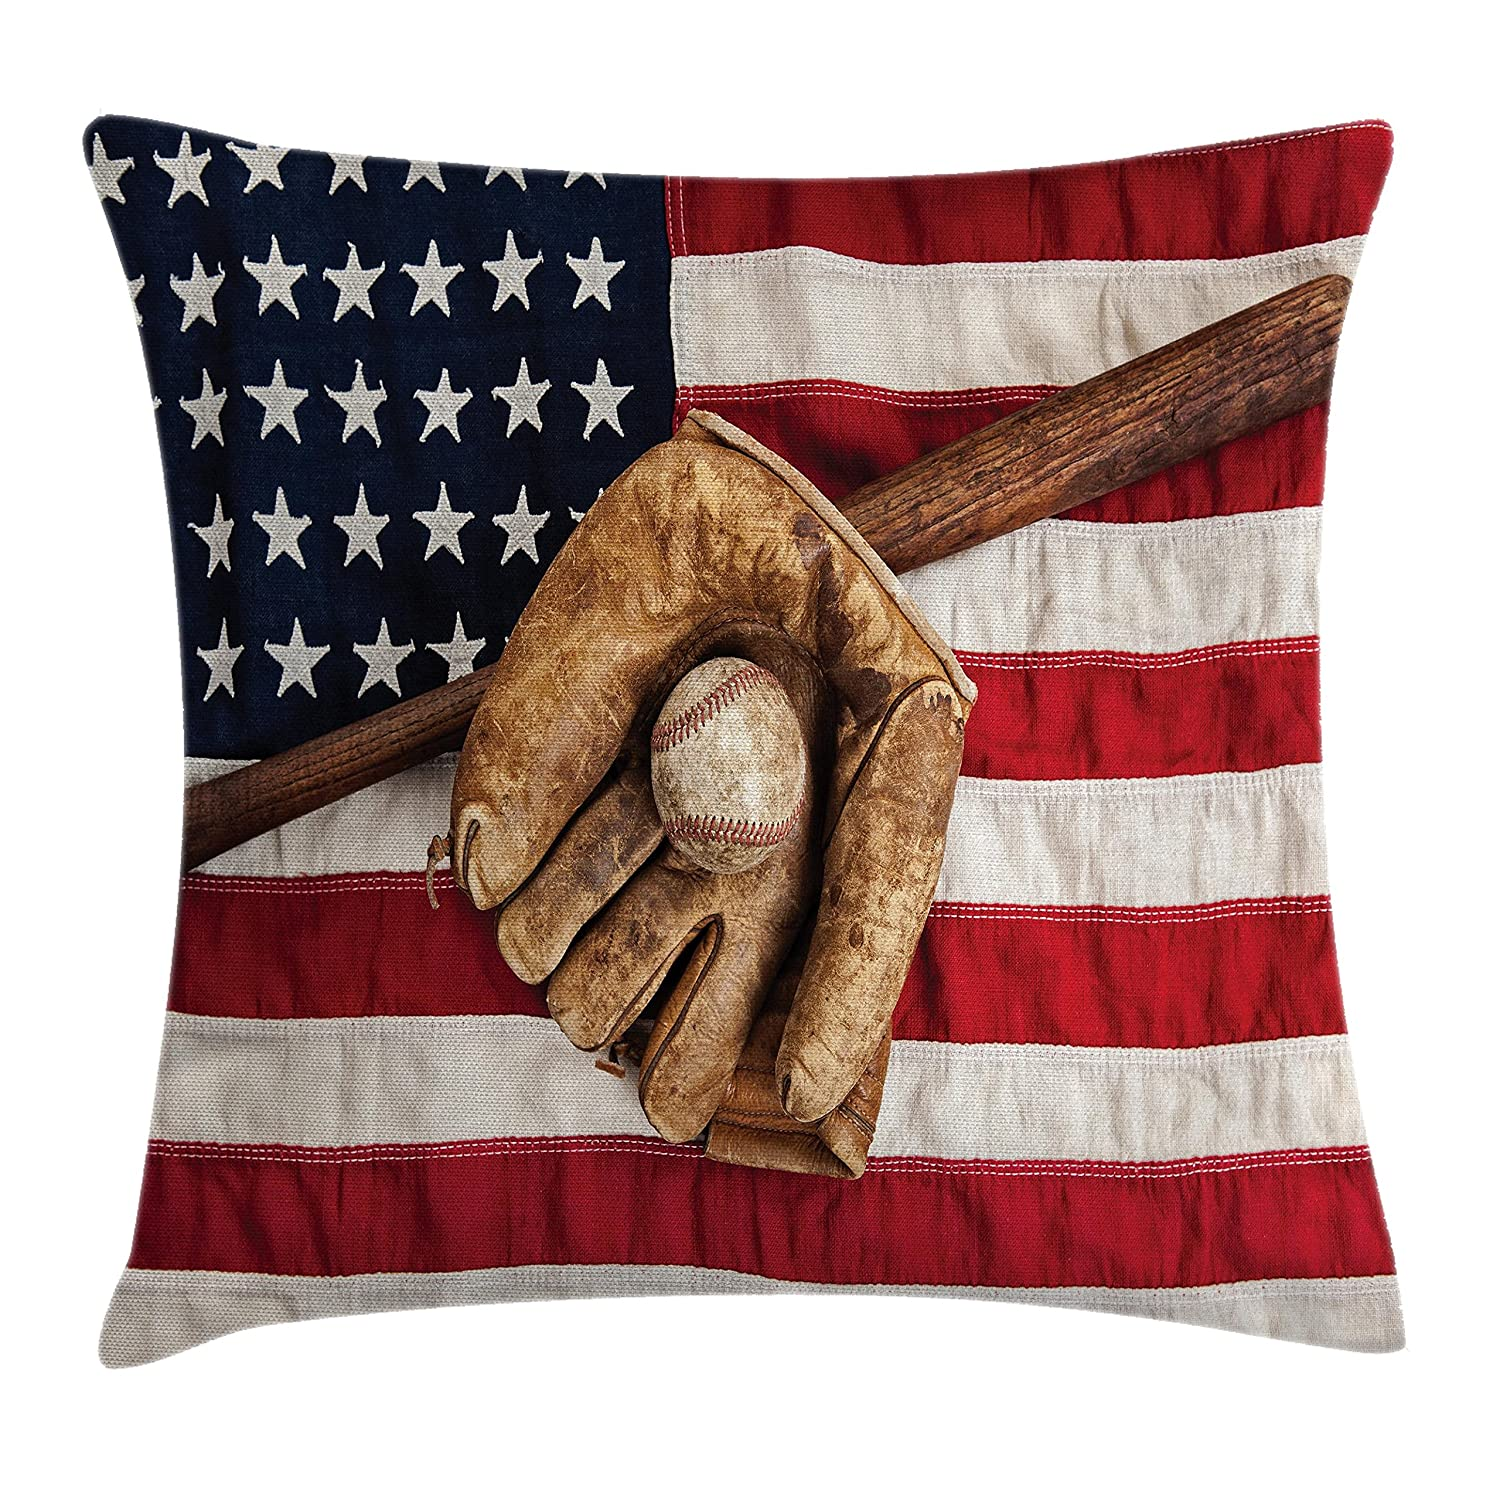 Ambesonne Sports Decor Throw Pillow Cushion Cover Decorative Square Accent Pillow Case Vintage Baseball League USA Grunge Glove Bat Fielding Sports Theme Image 24 X 24 Inches Brown Red Blue